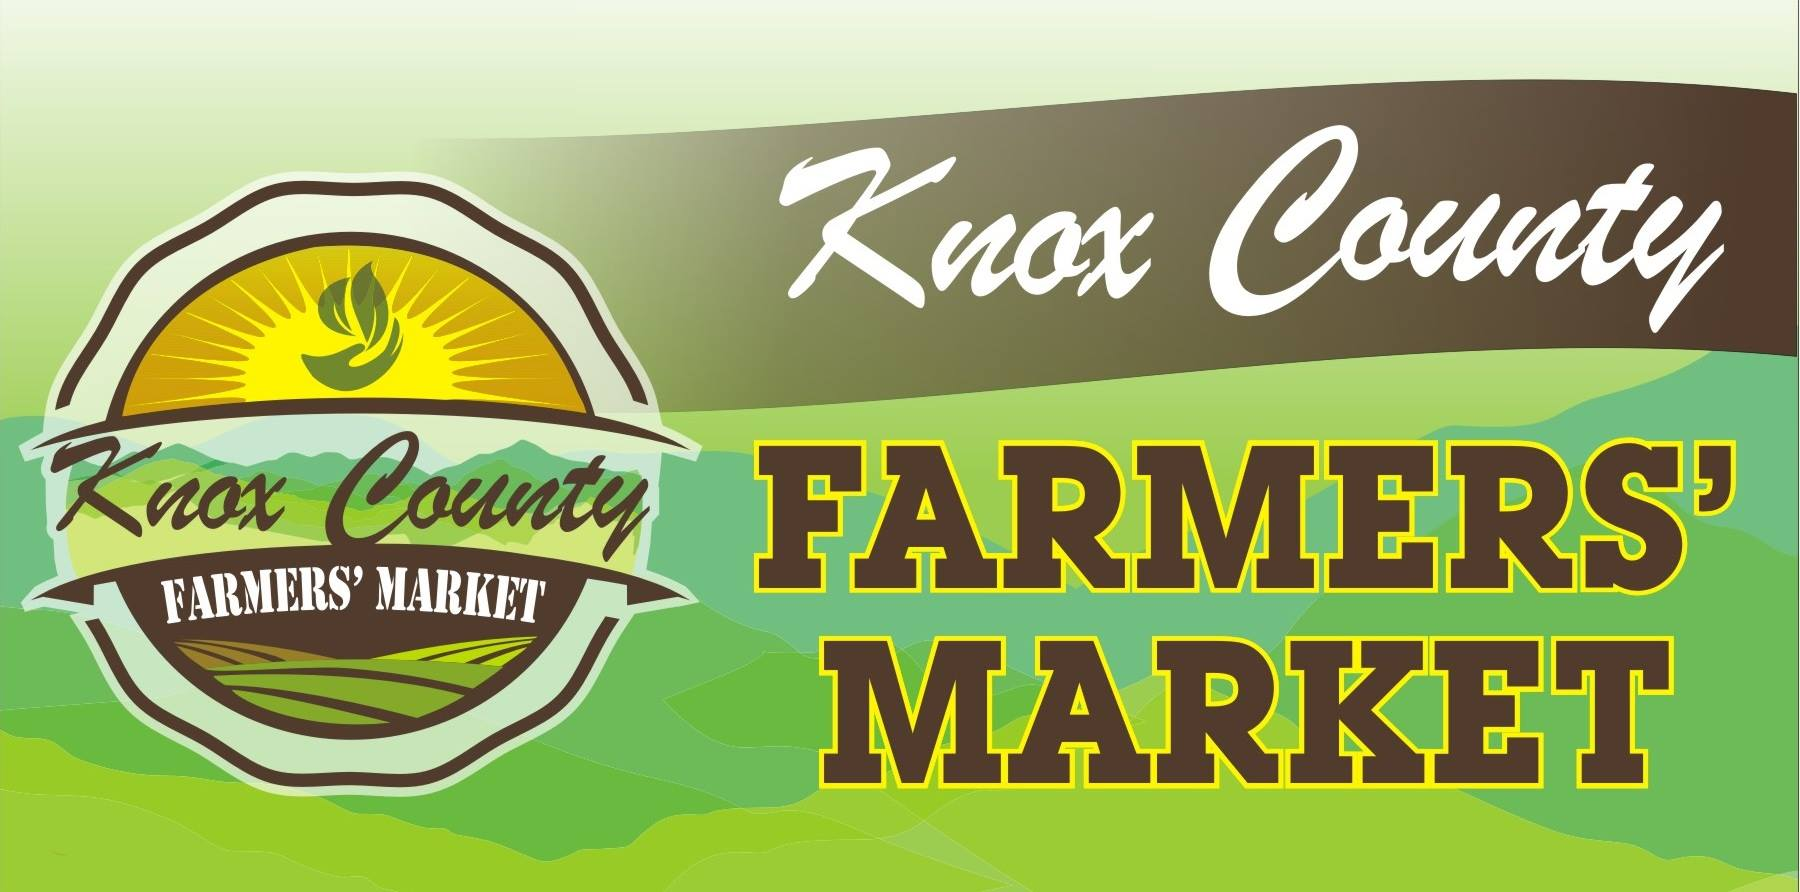 The Knox County Farmers' Market meets every Thursday from 5:00pm to 8:00pm from May 26 to September 29, 2016.  The market is located in the parking lot of the Knox County Extension Office, 215 Treuhaft Blvd in Barbourville, KY.  New vendors are always welcome. farmersmarketknox@gmail.com.